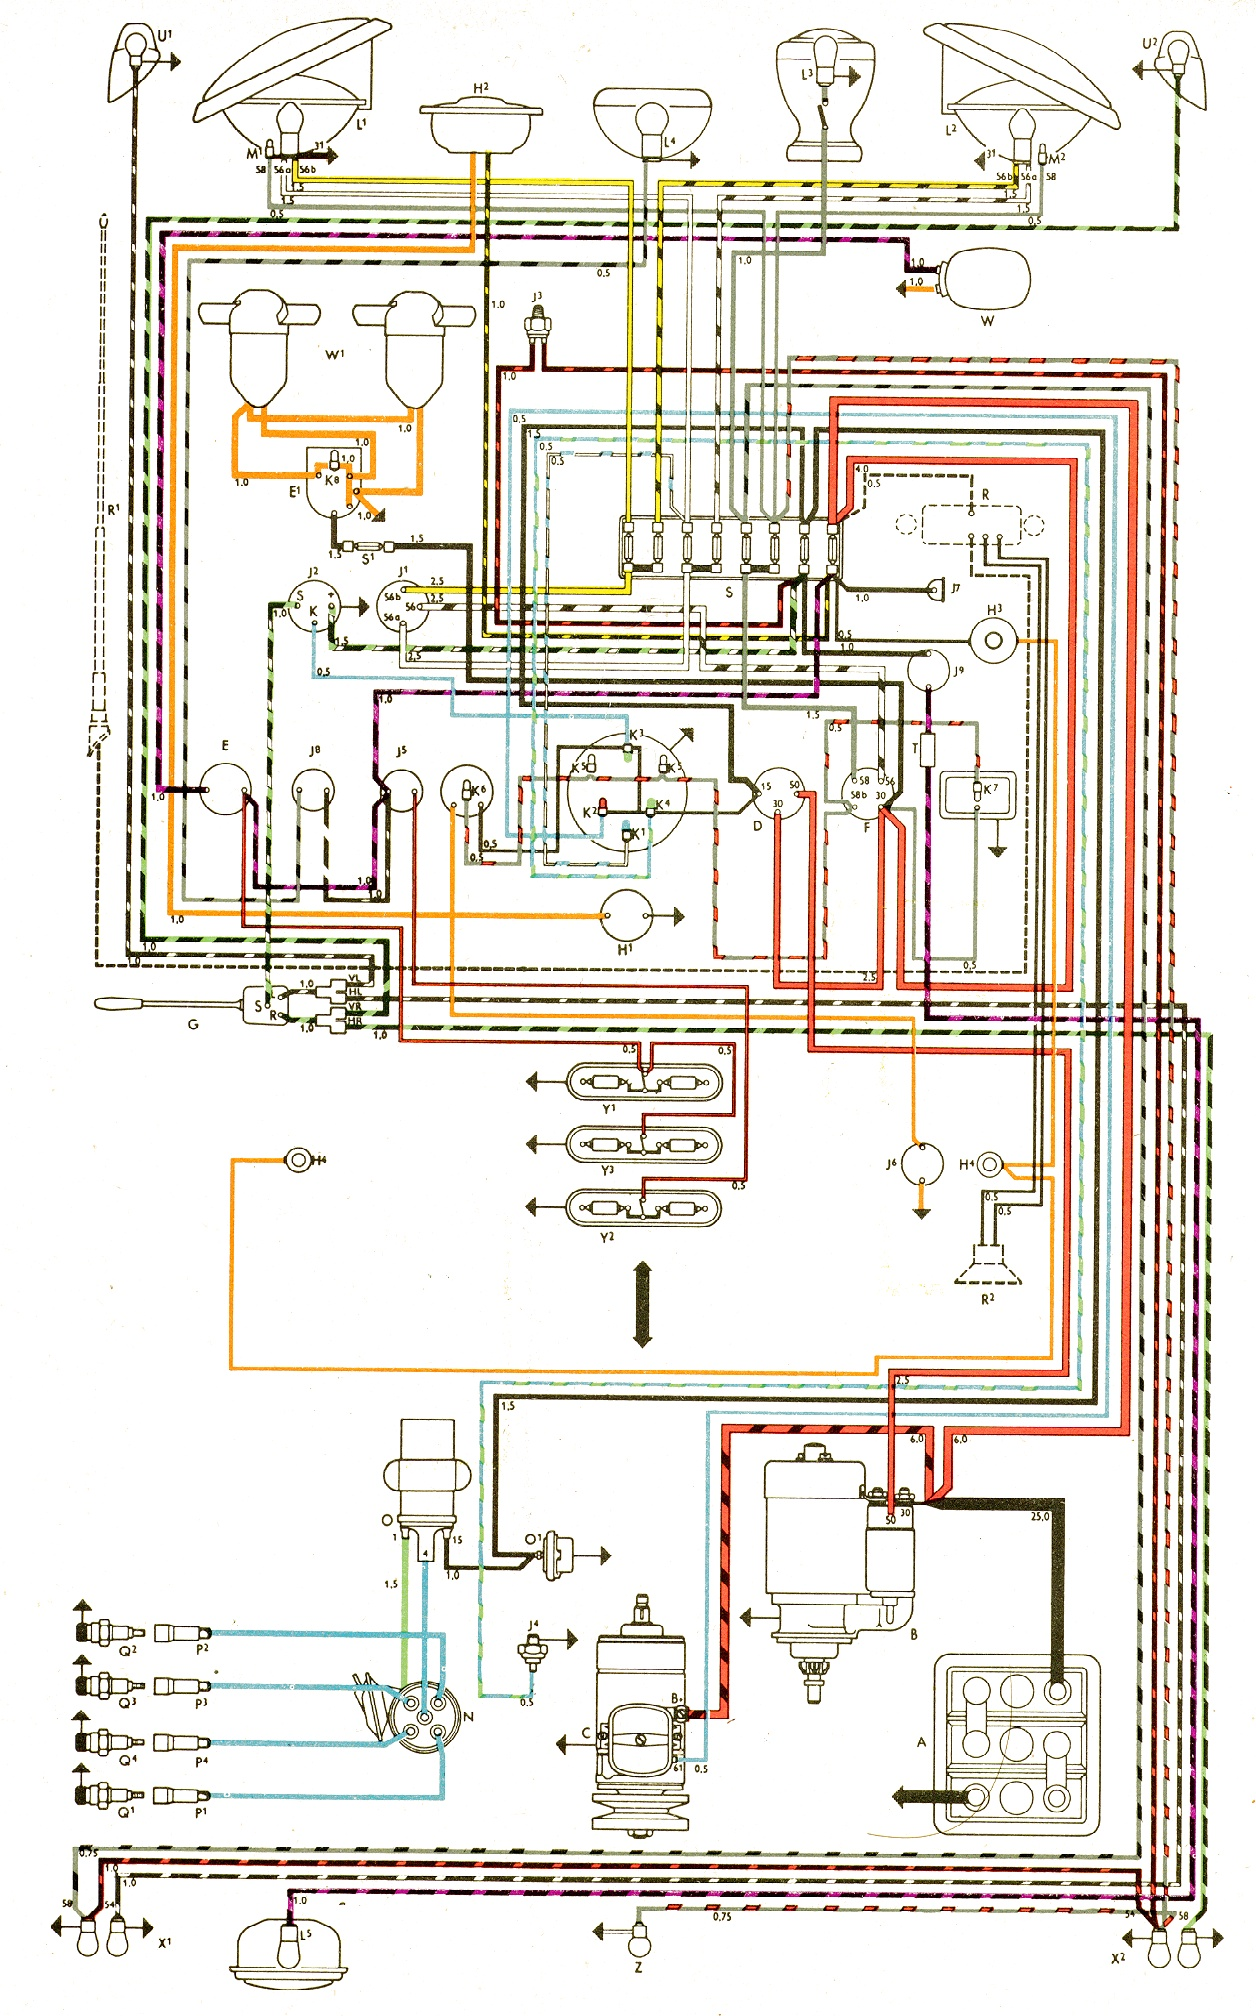 bus 62 vintagebus com vw bus (and other) wiring diagrams vw engine wiring diagram at crackthecode.co